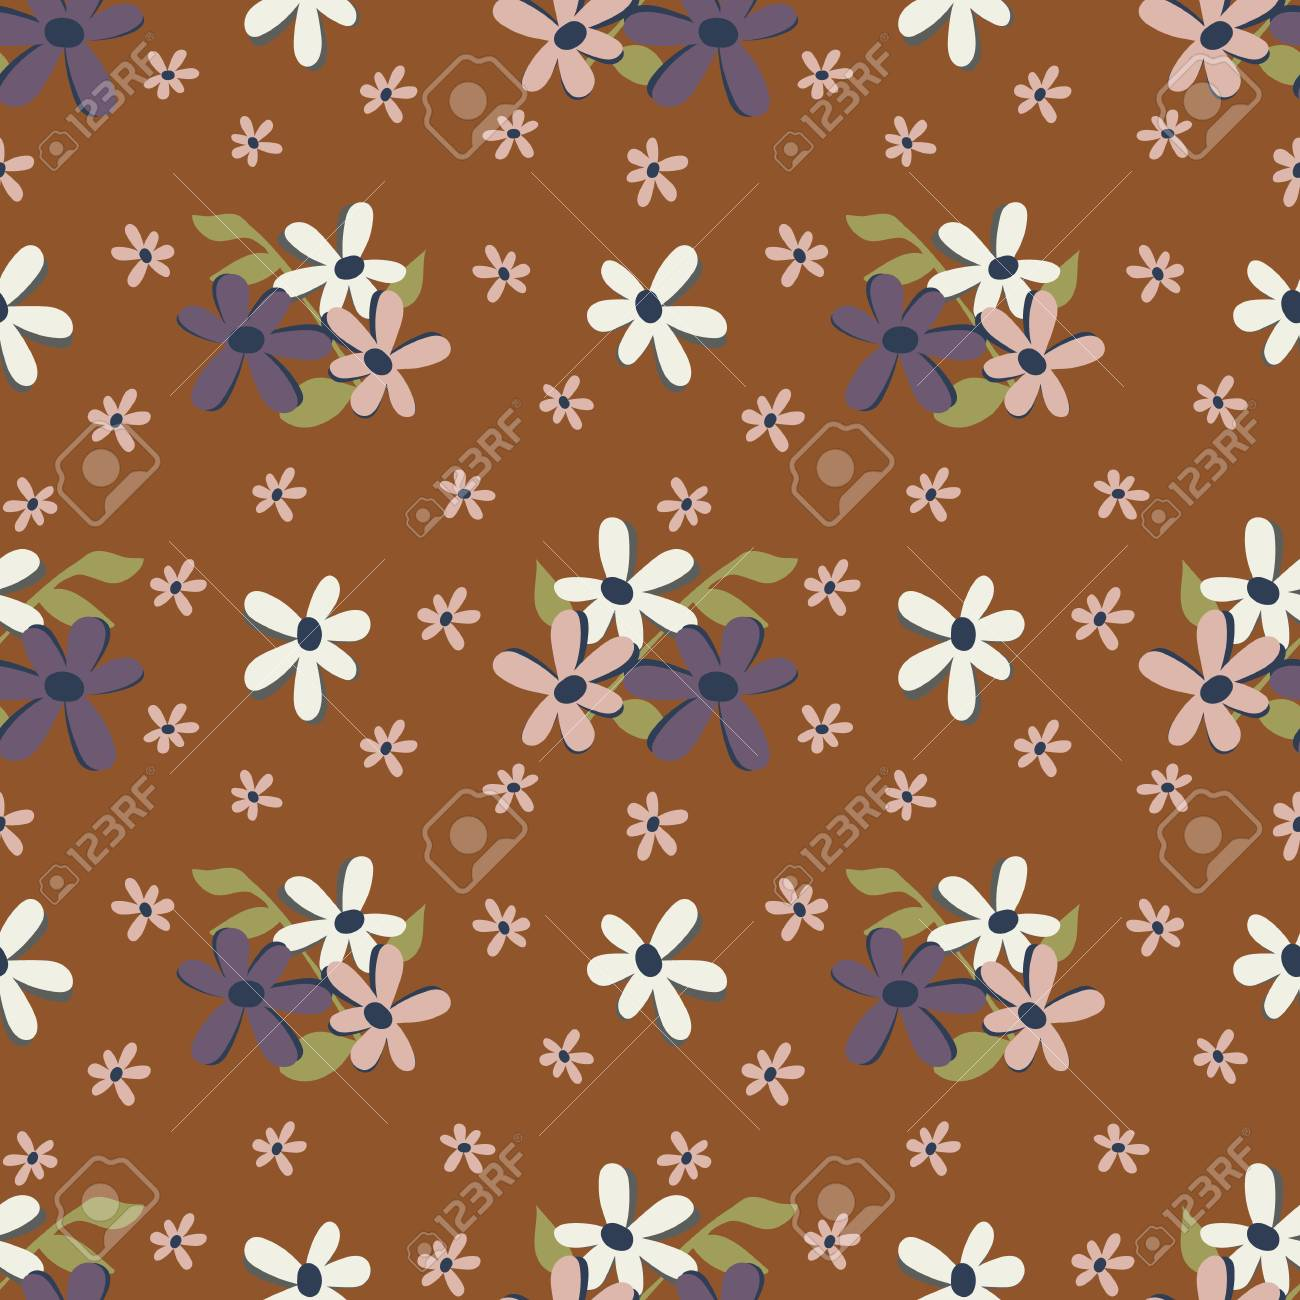 Seamless Repeat Cute Daisy Floral Pattern With Rust Background